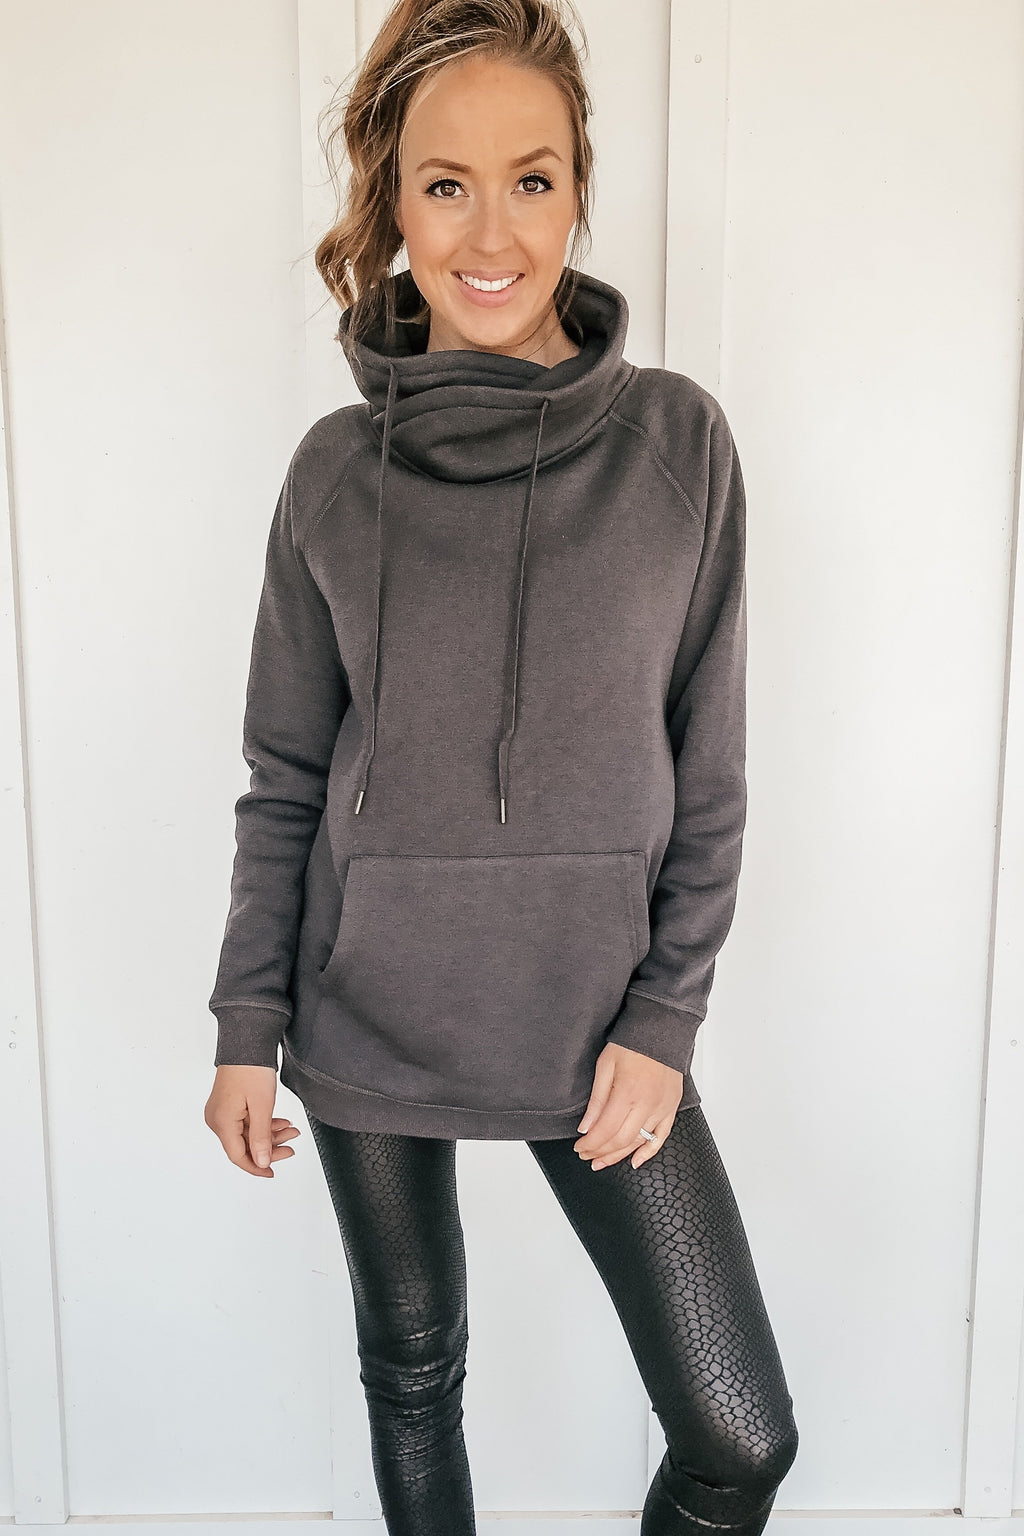 The Sporty Sweatshirt in Charcoal